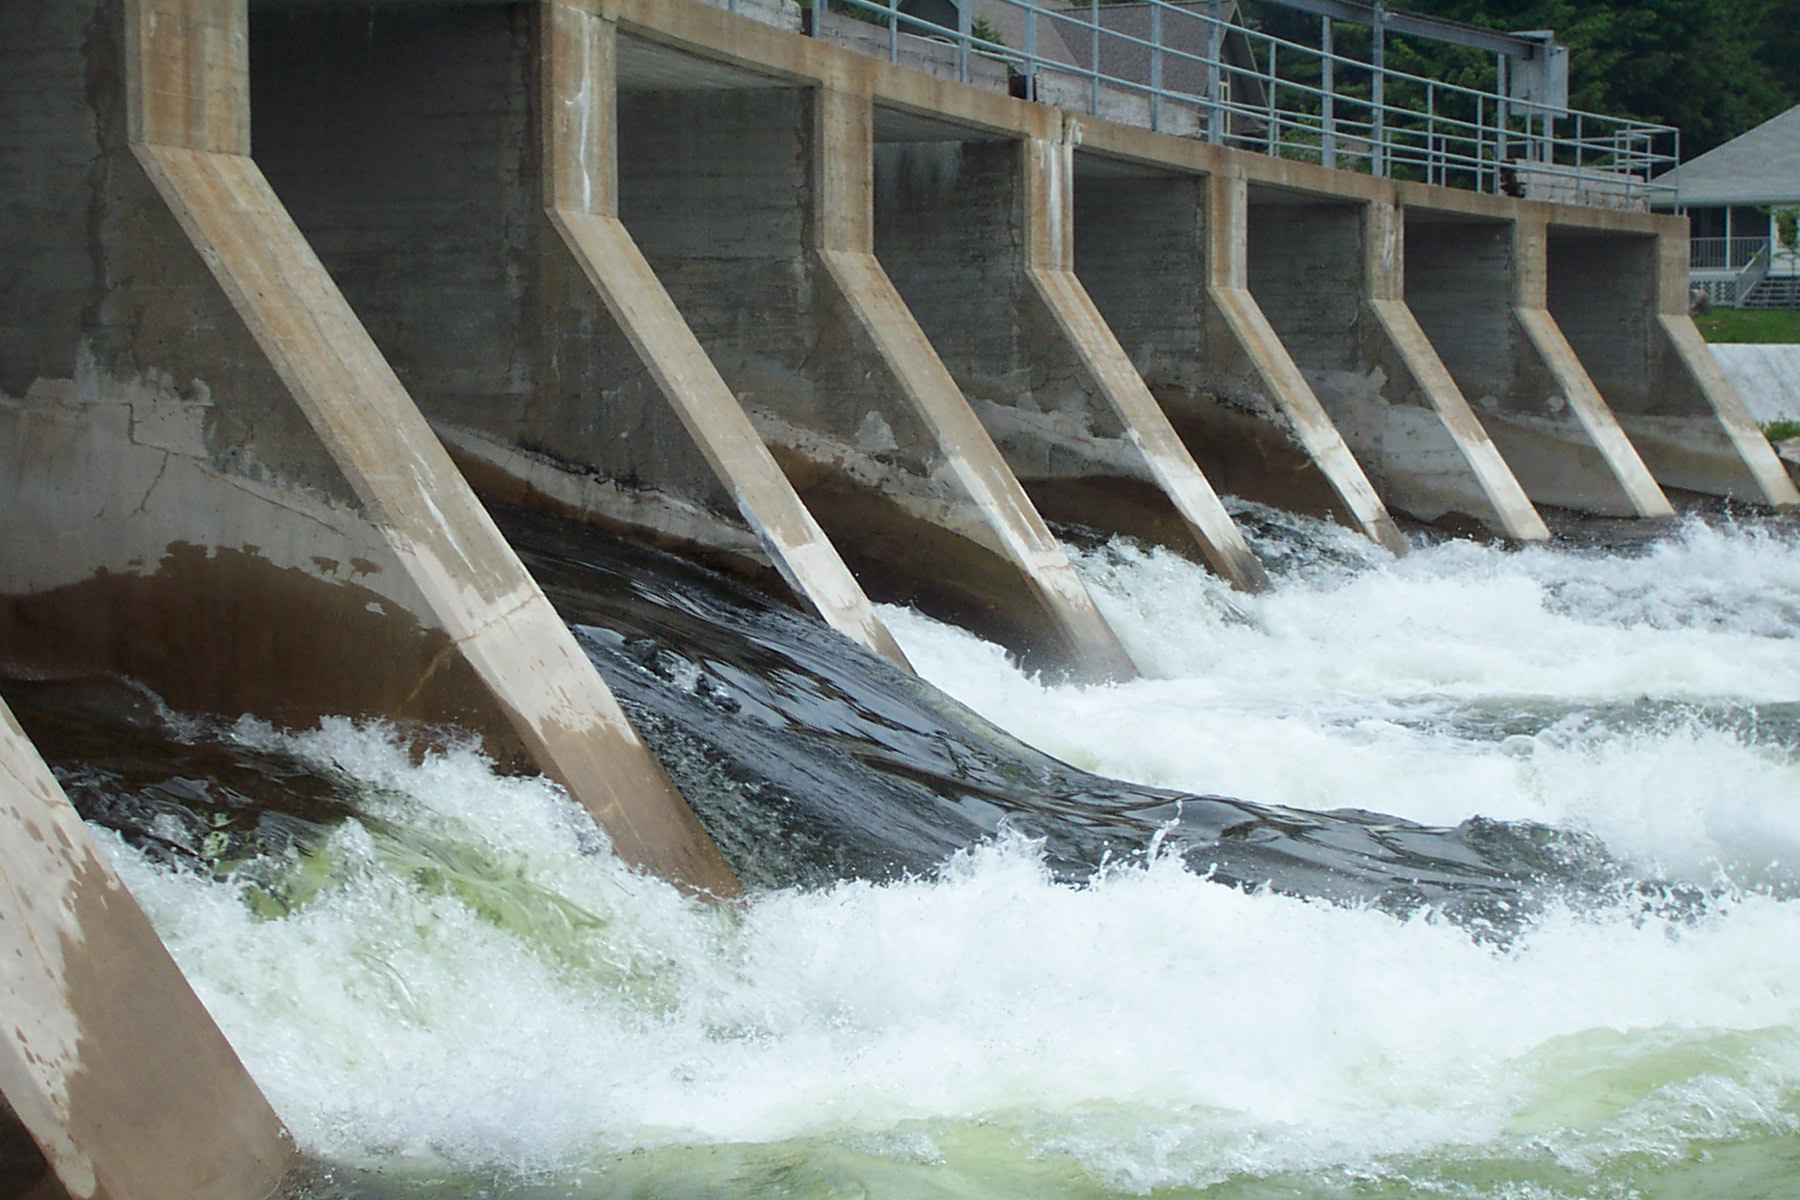 Cameroon plans to build USD 3 billion hydropower plant to export electricity